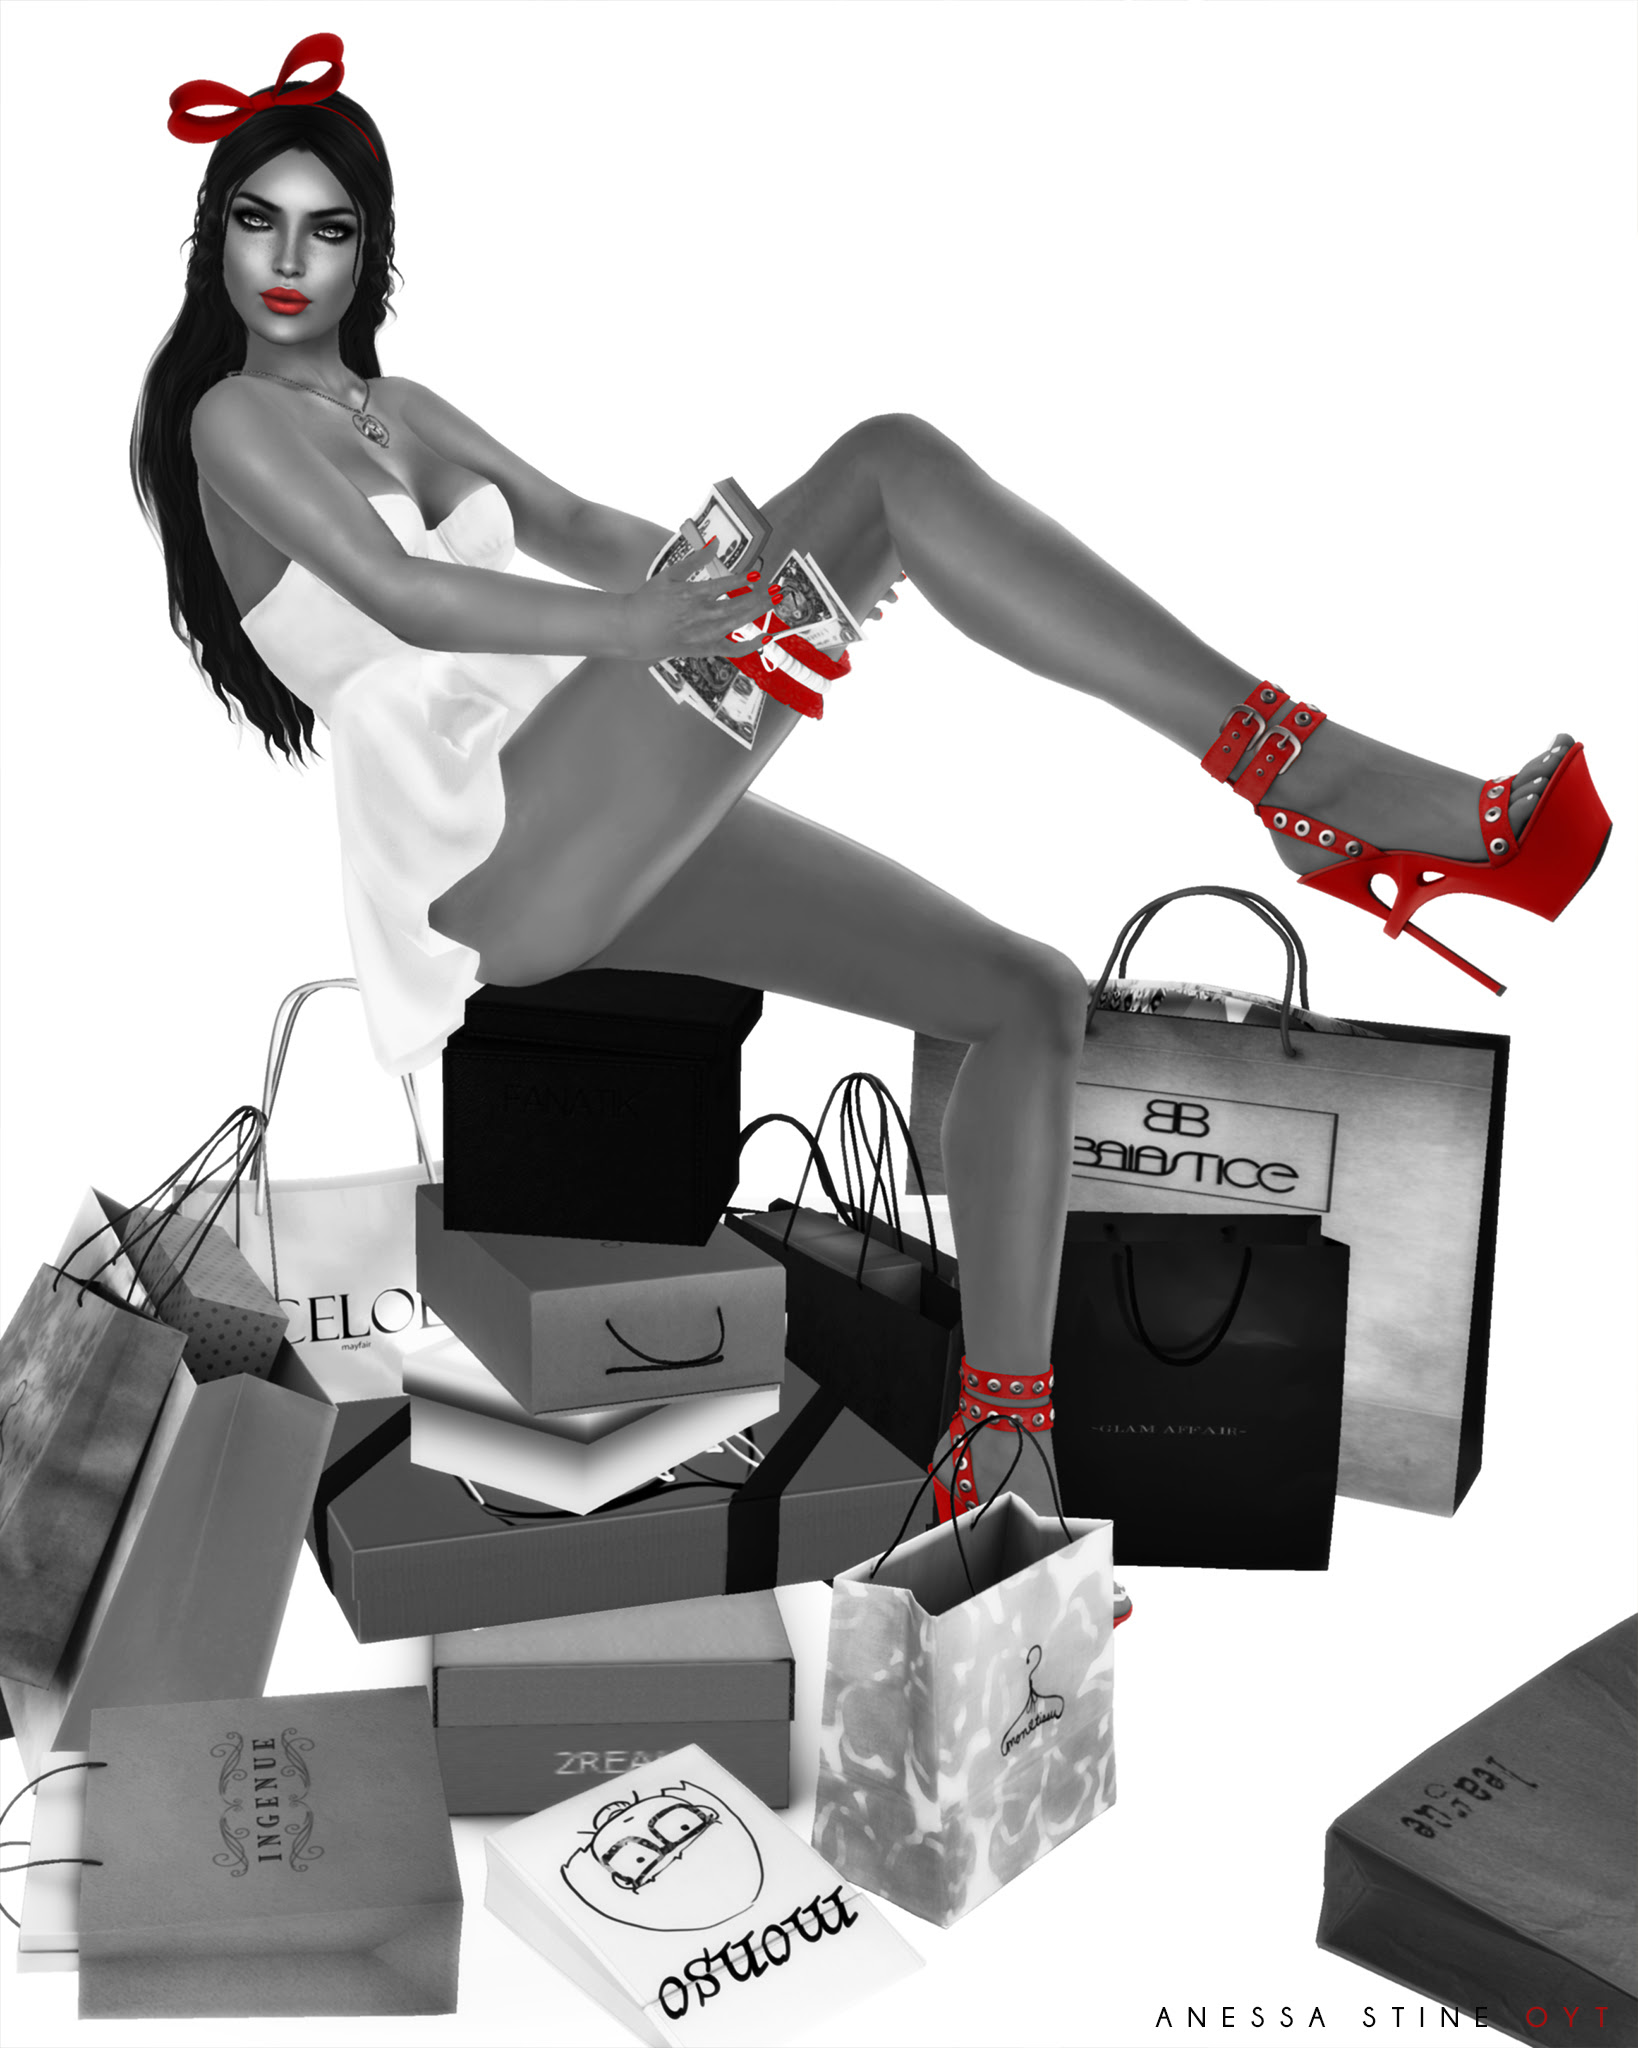 On Your Toes Blog: Retail Therapy